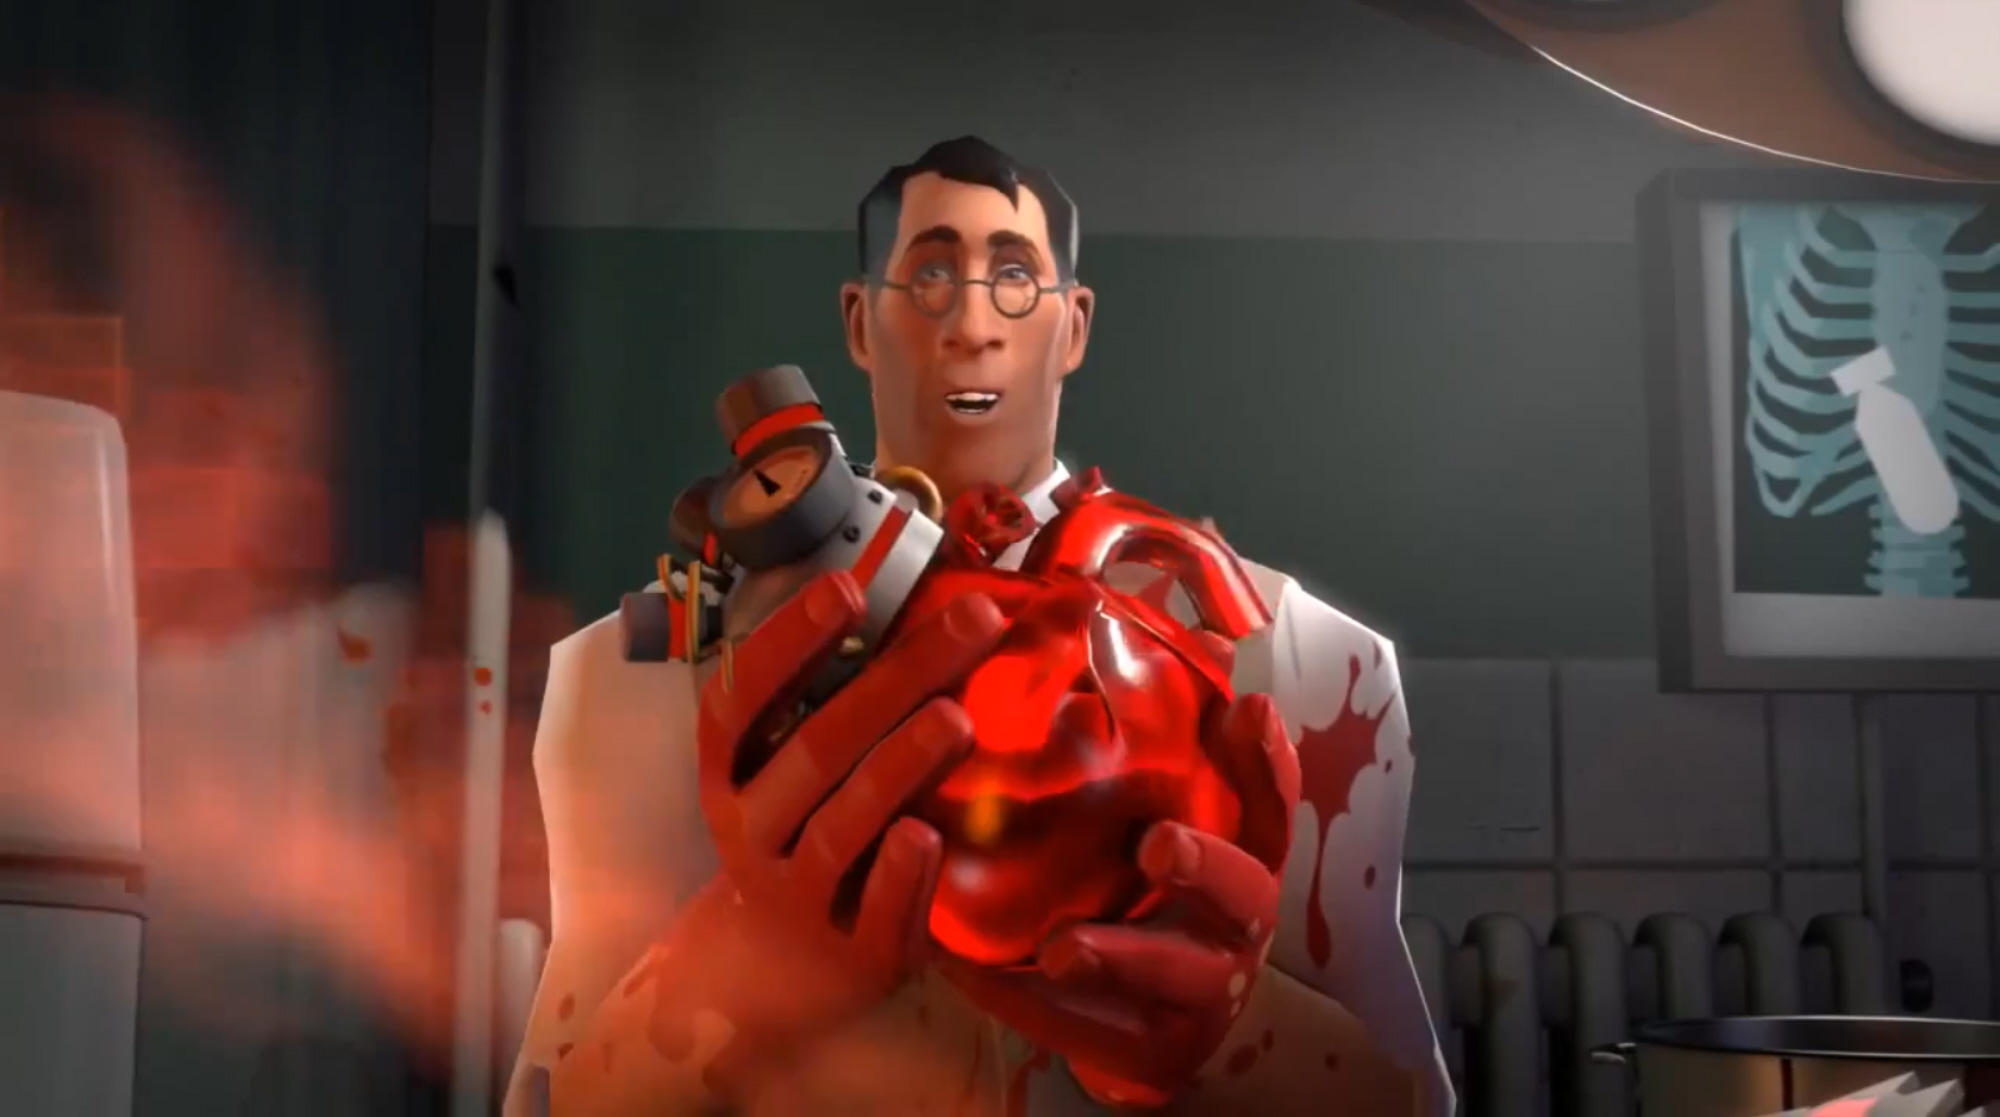 meet the medic outtakes